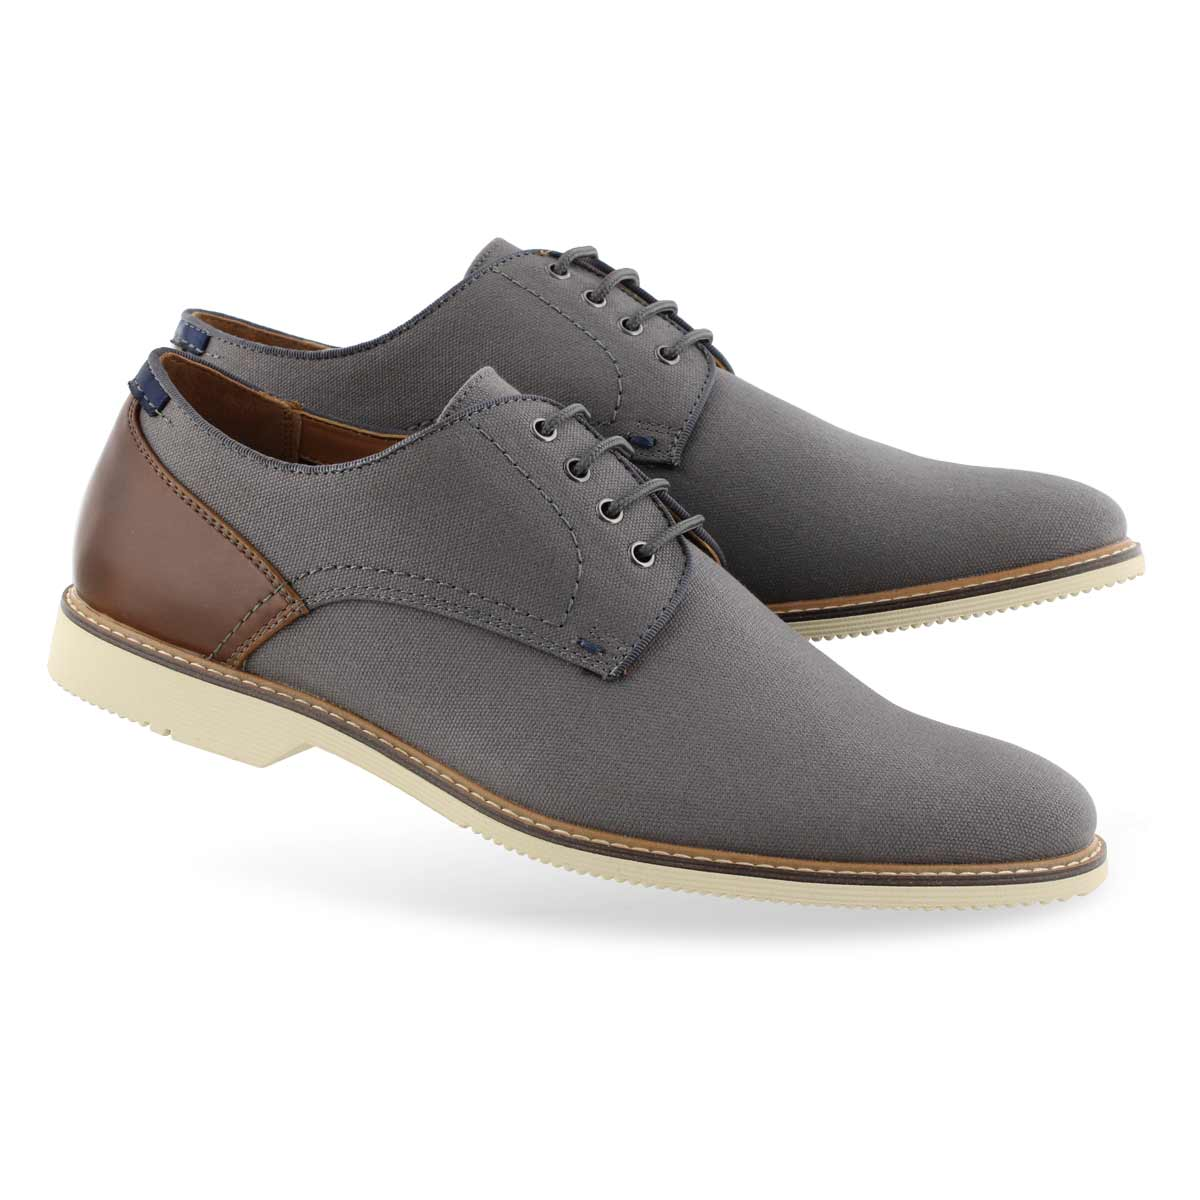 Men's NEWSTEAD grey lace up dress oxfords